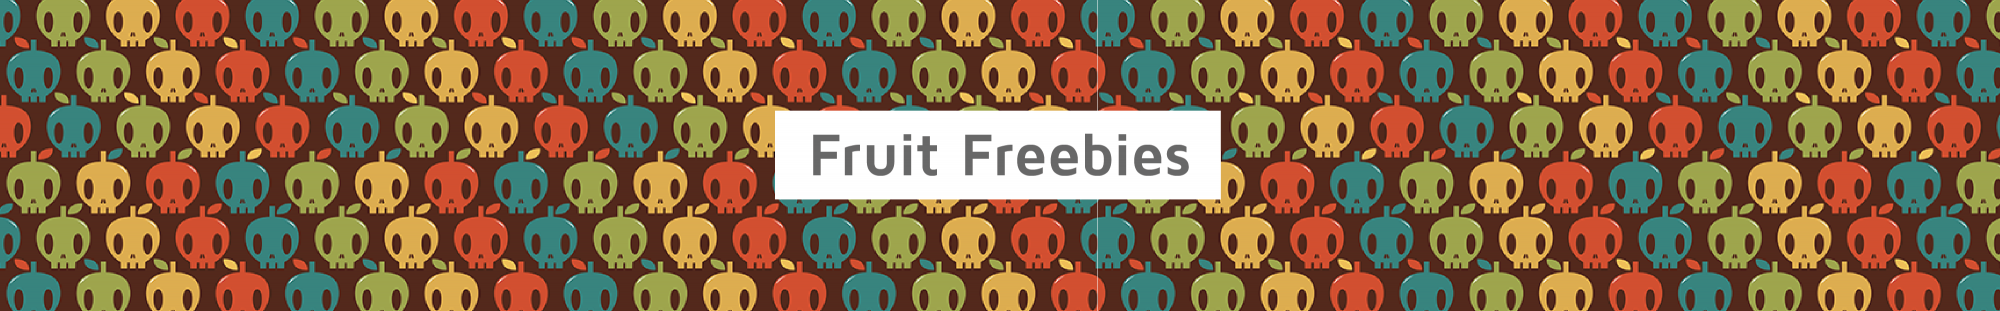 Freebies Banner-11